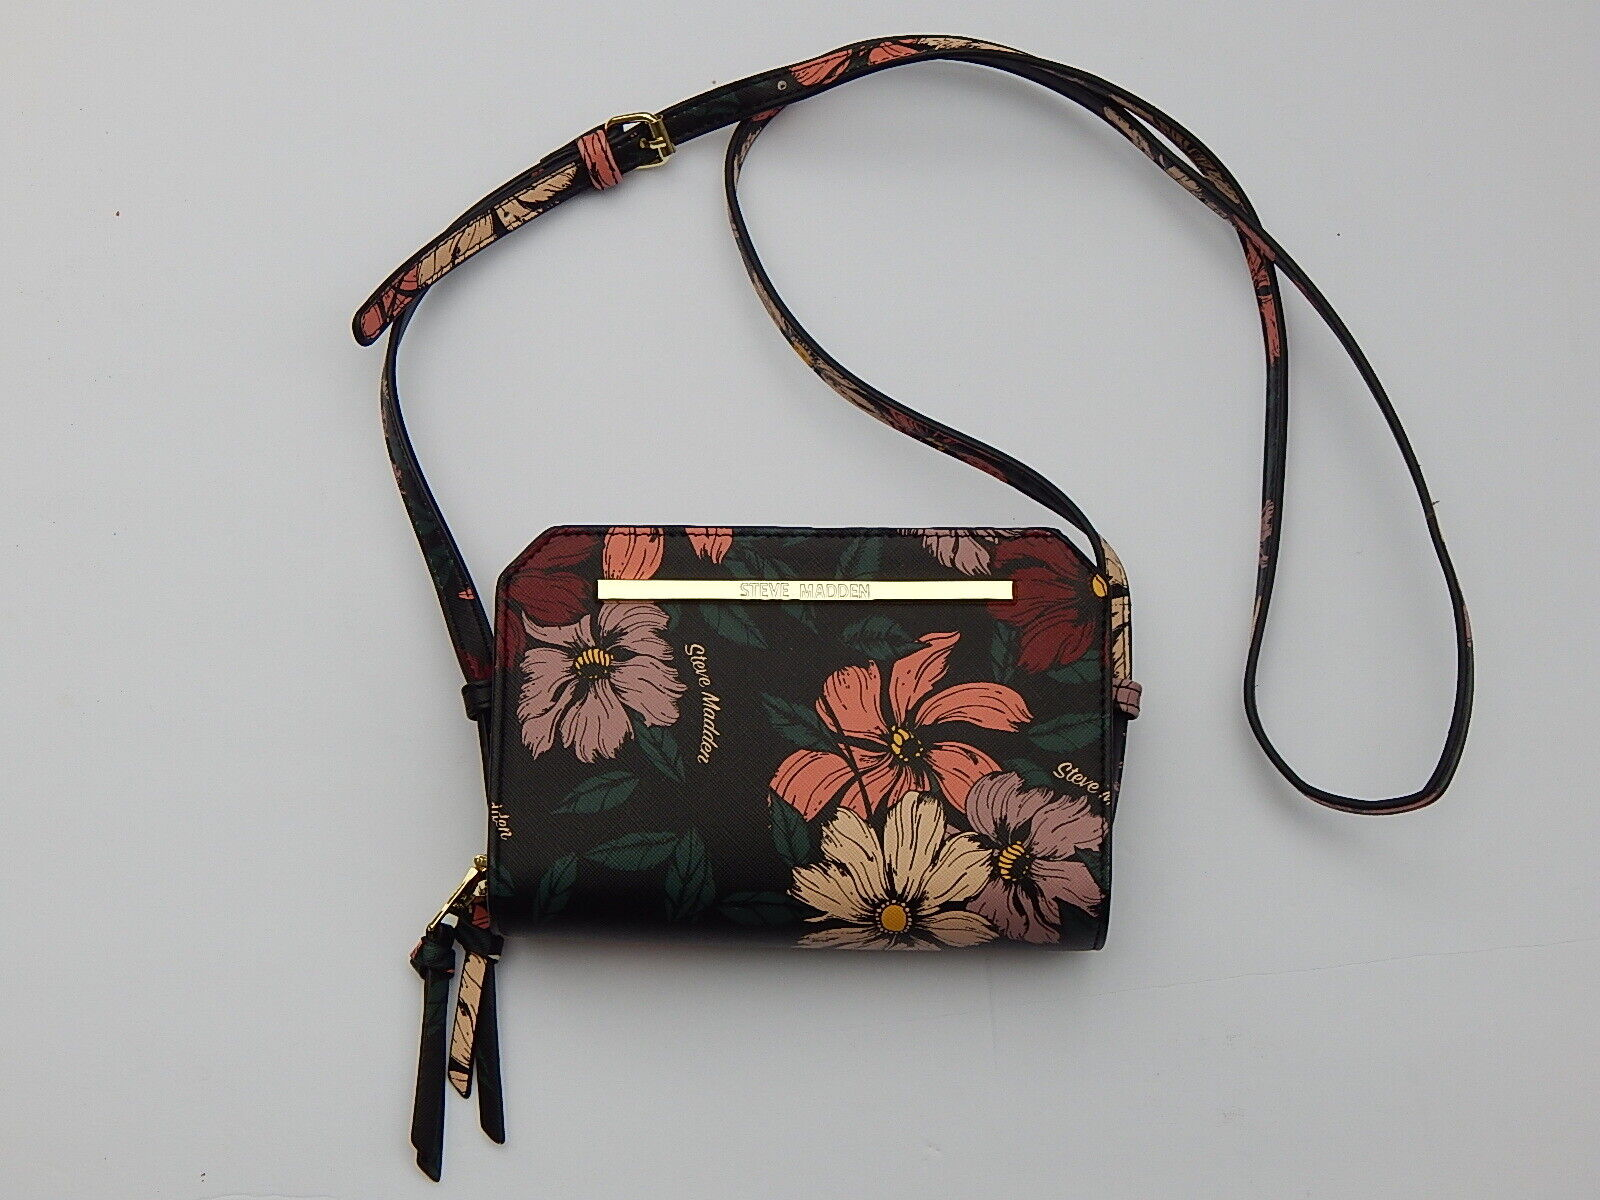 STEVE MADDEN DOUBLE COMPARTMENT CROSSBODY SHOULDER Bag NEW AUTHENTIC